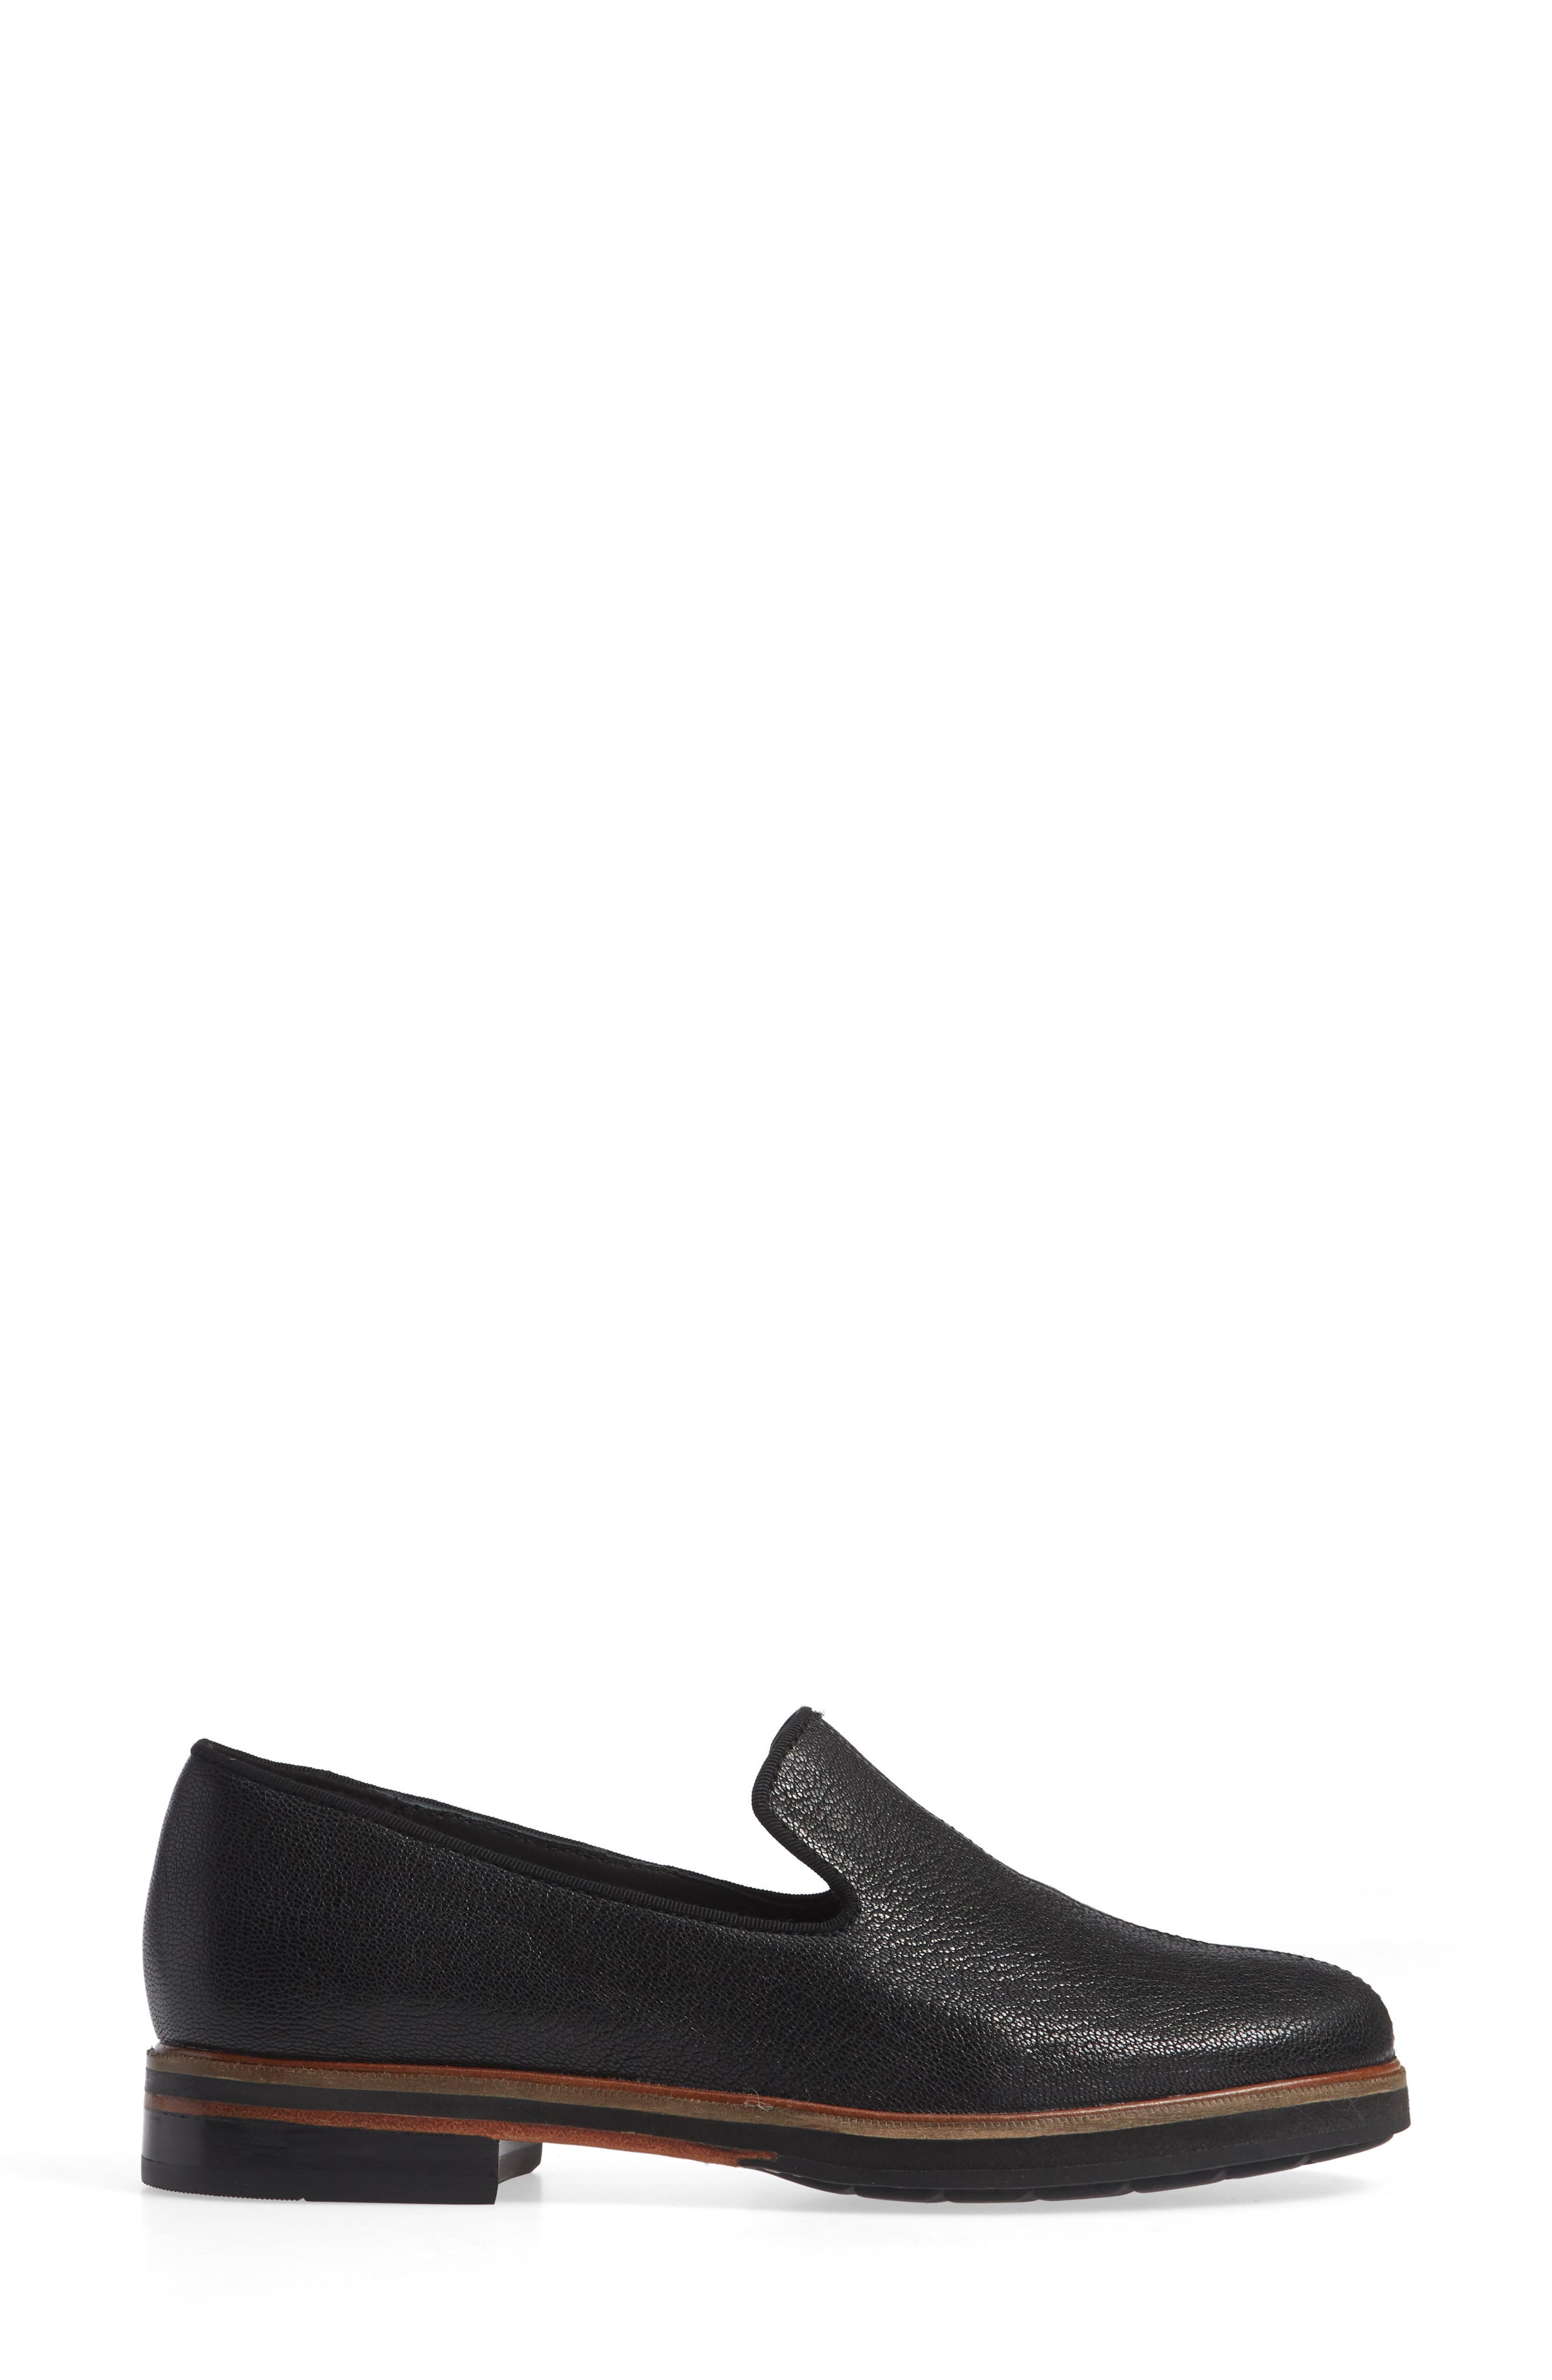 CLARKS<SUP>®</SUP>, Frida Loafer, Alternate thumbnail 3, color, BLACK TUMBLED LEATHER